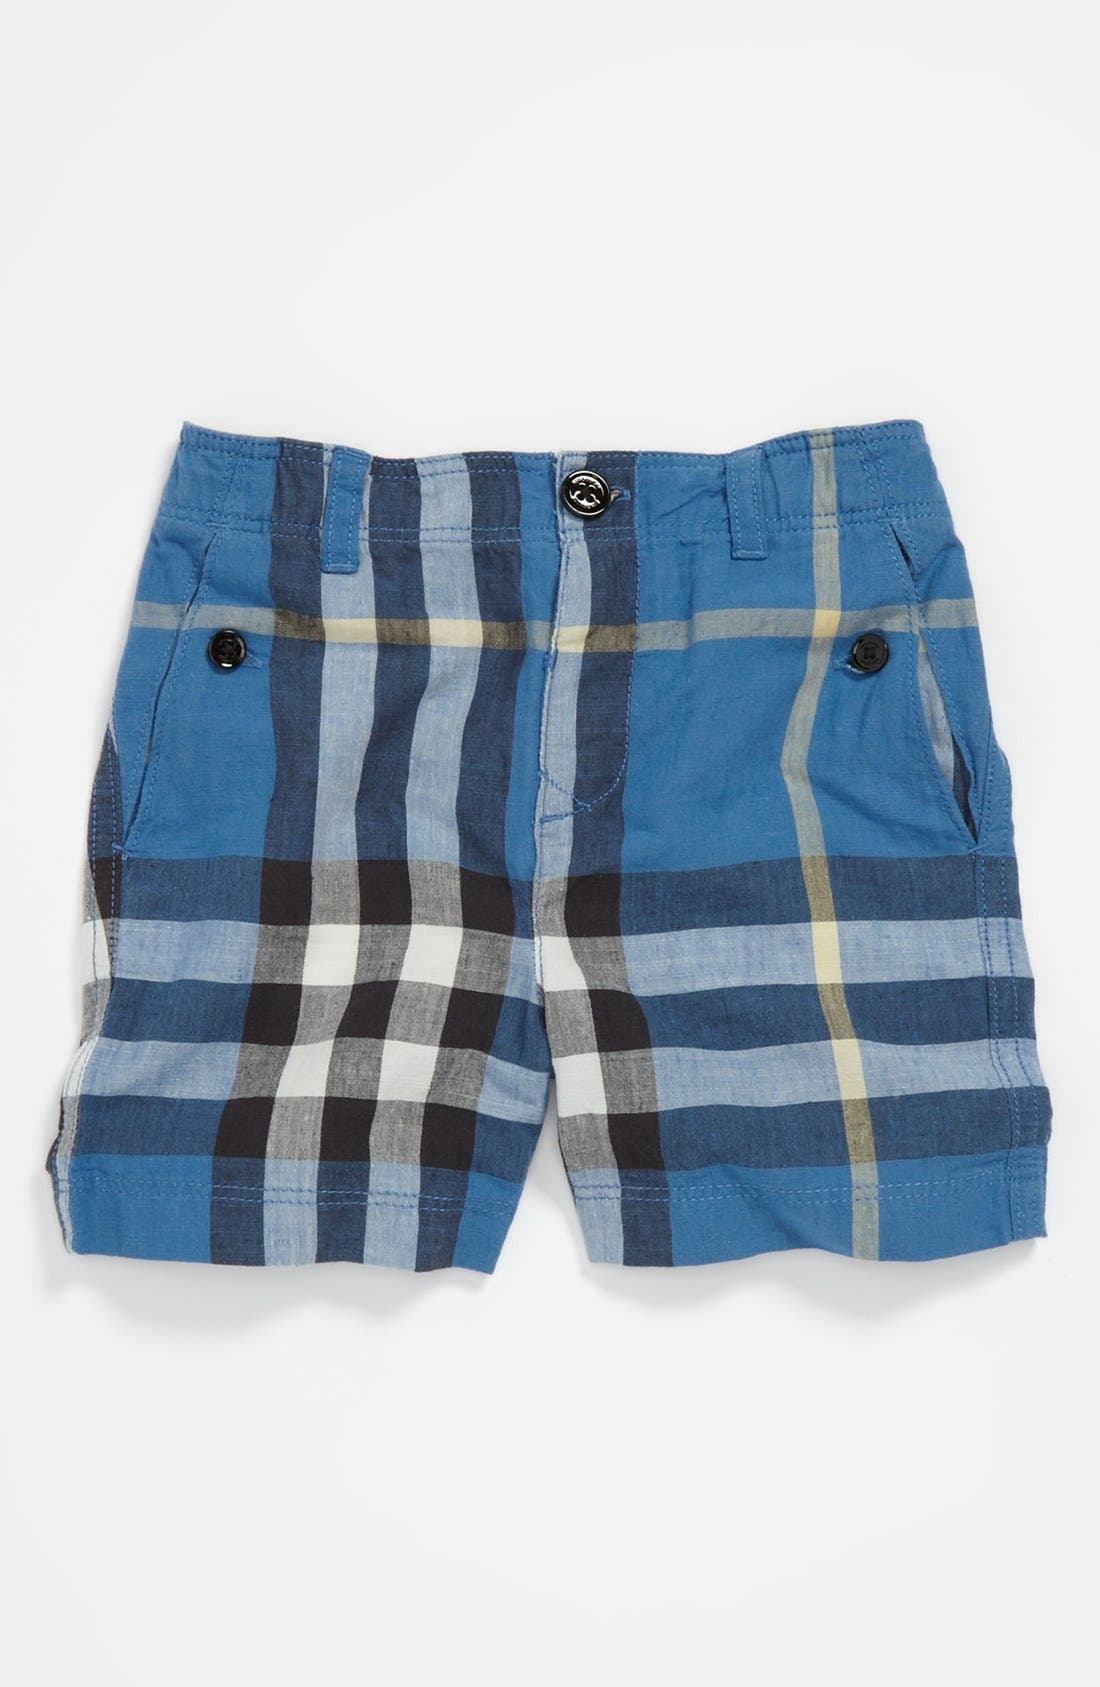 Alternate Image 1 Selected - Burberry 'Mini Scout' Shorts (Toddler)